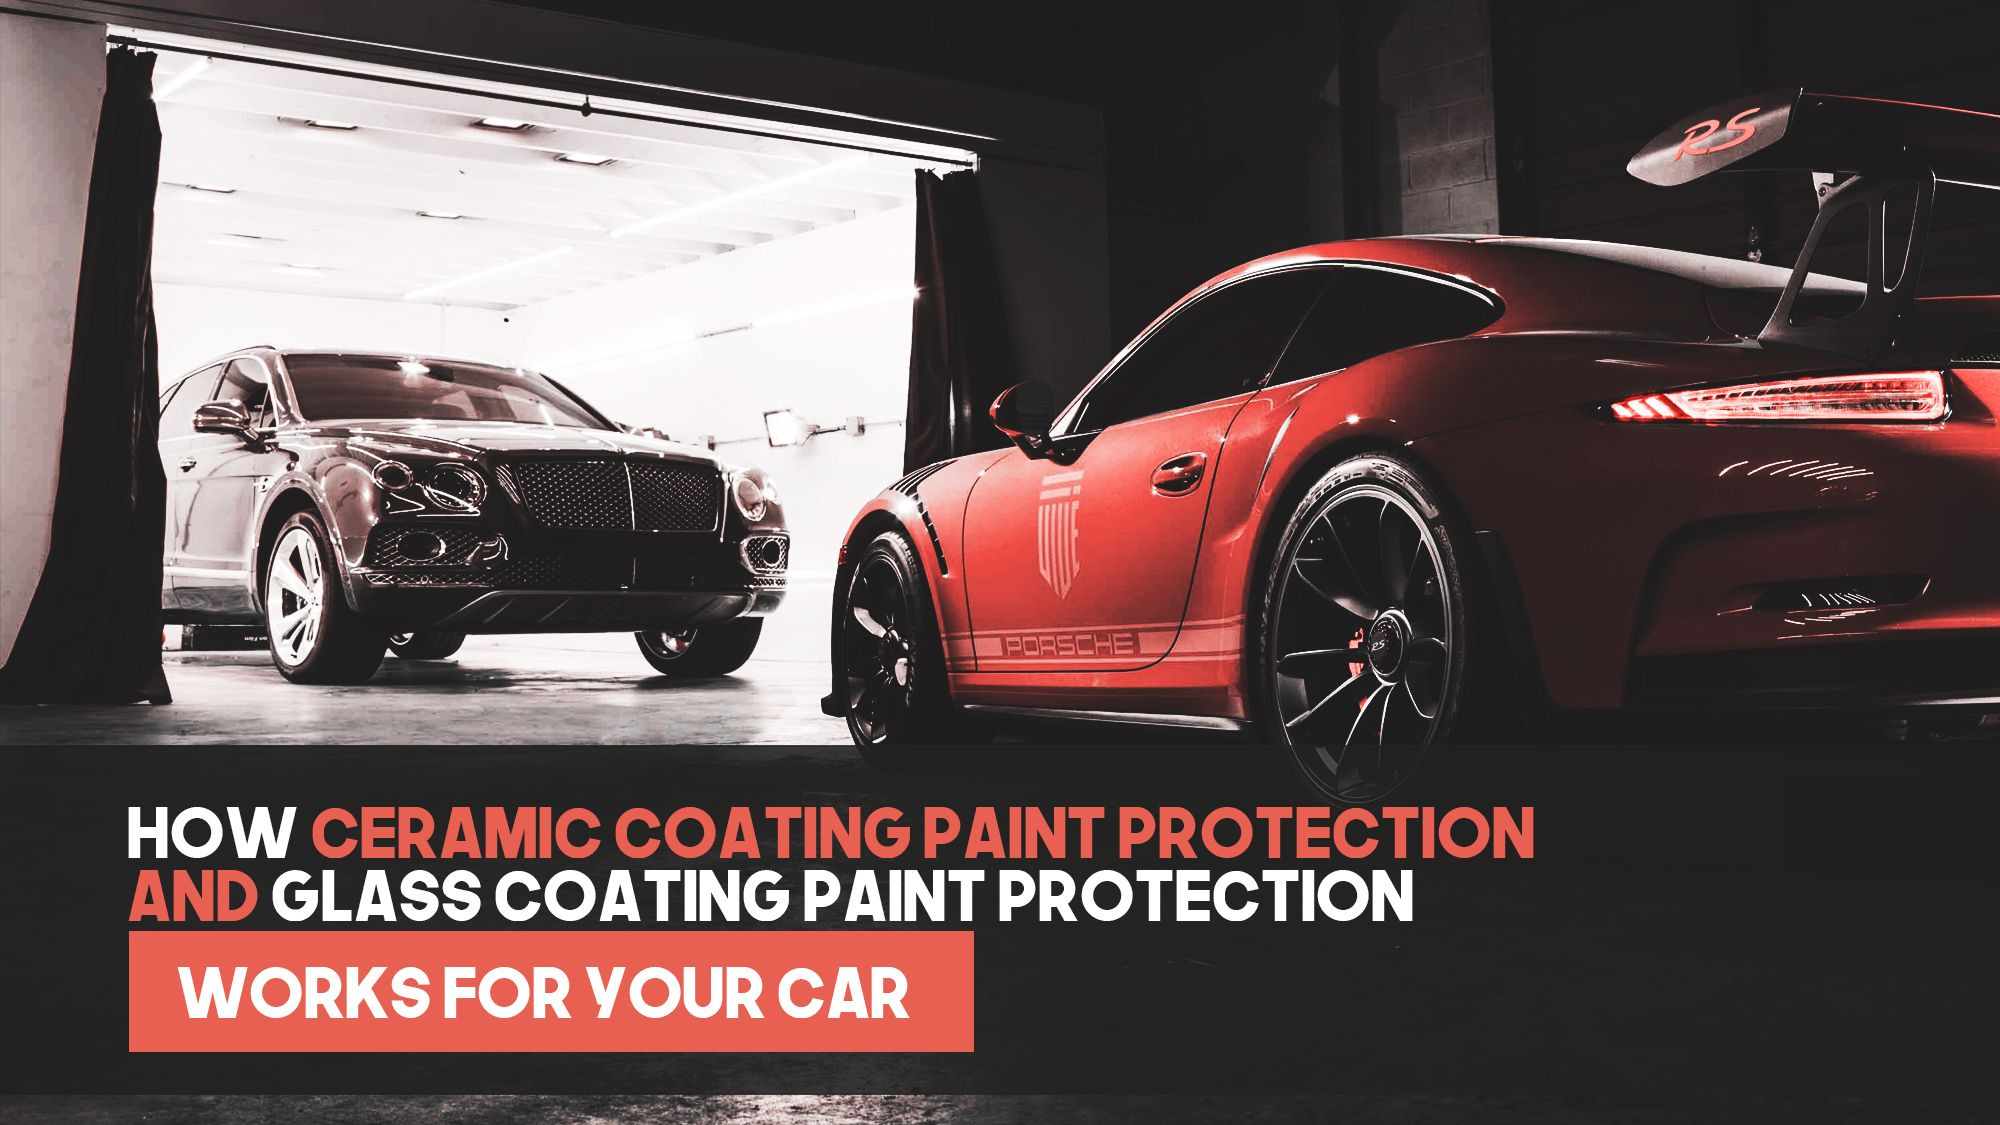 How Ceramic Coating Paint Protection And Glass Coating Paint Protection Works For Your Car Ceramic Coating Car Paint Protection